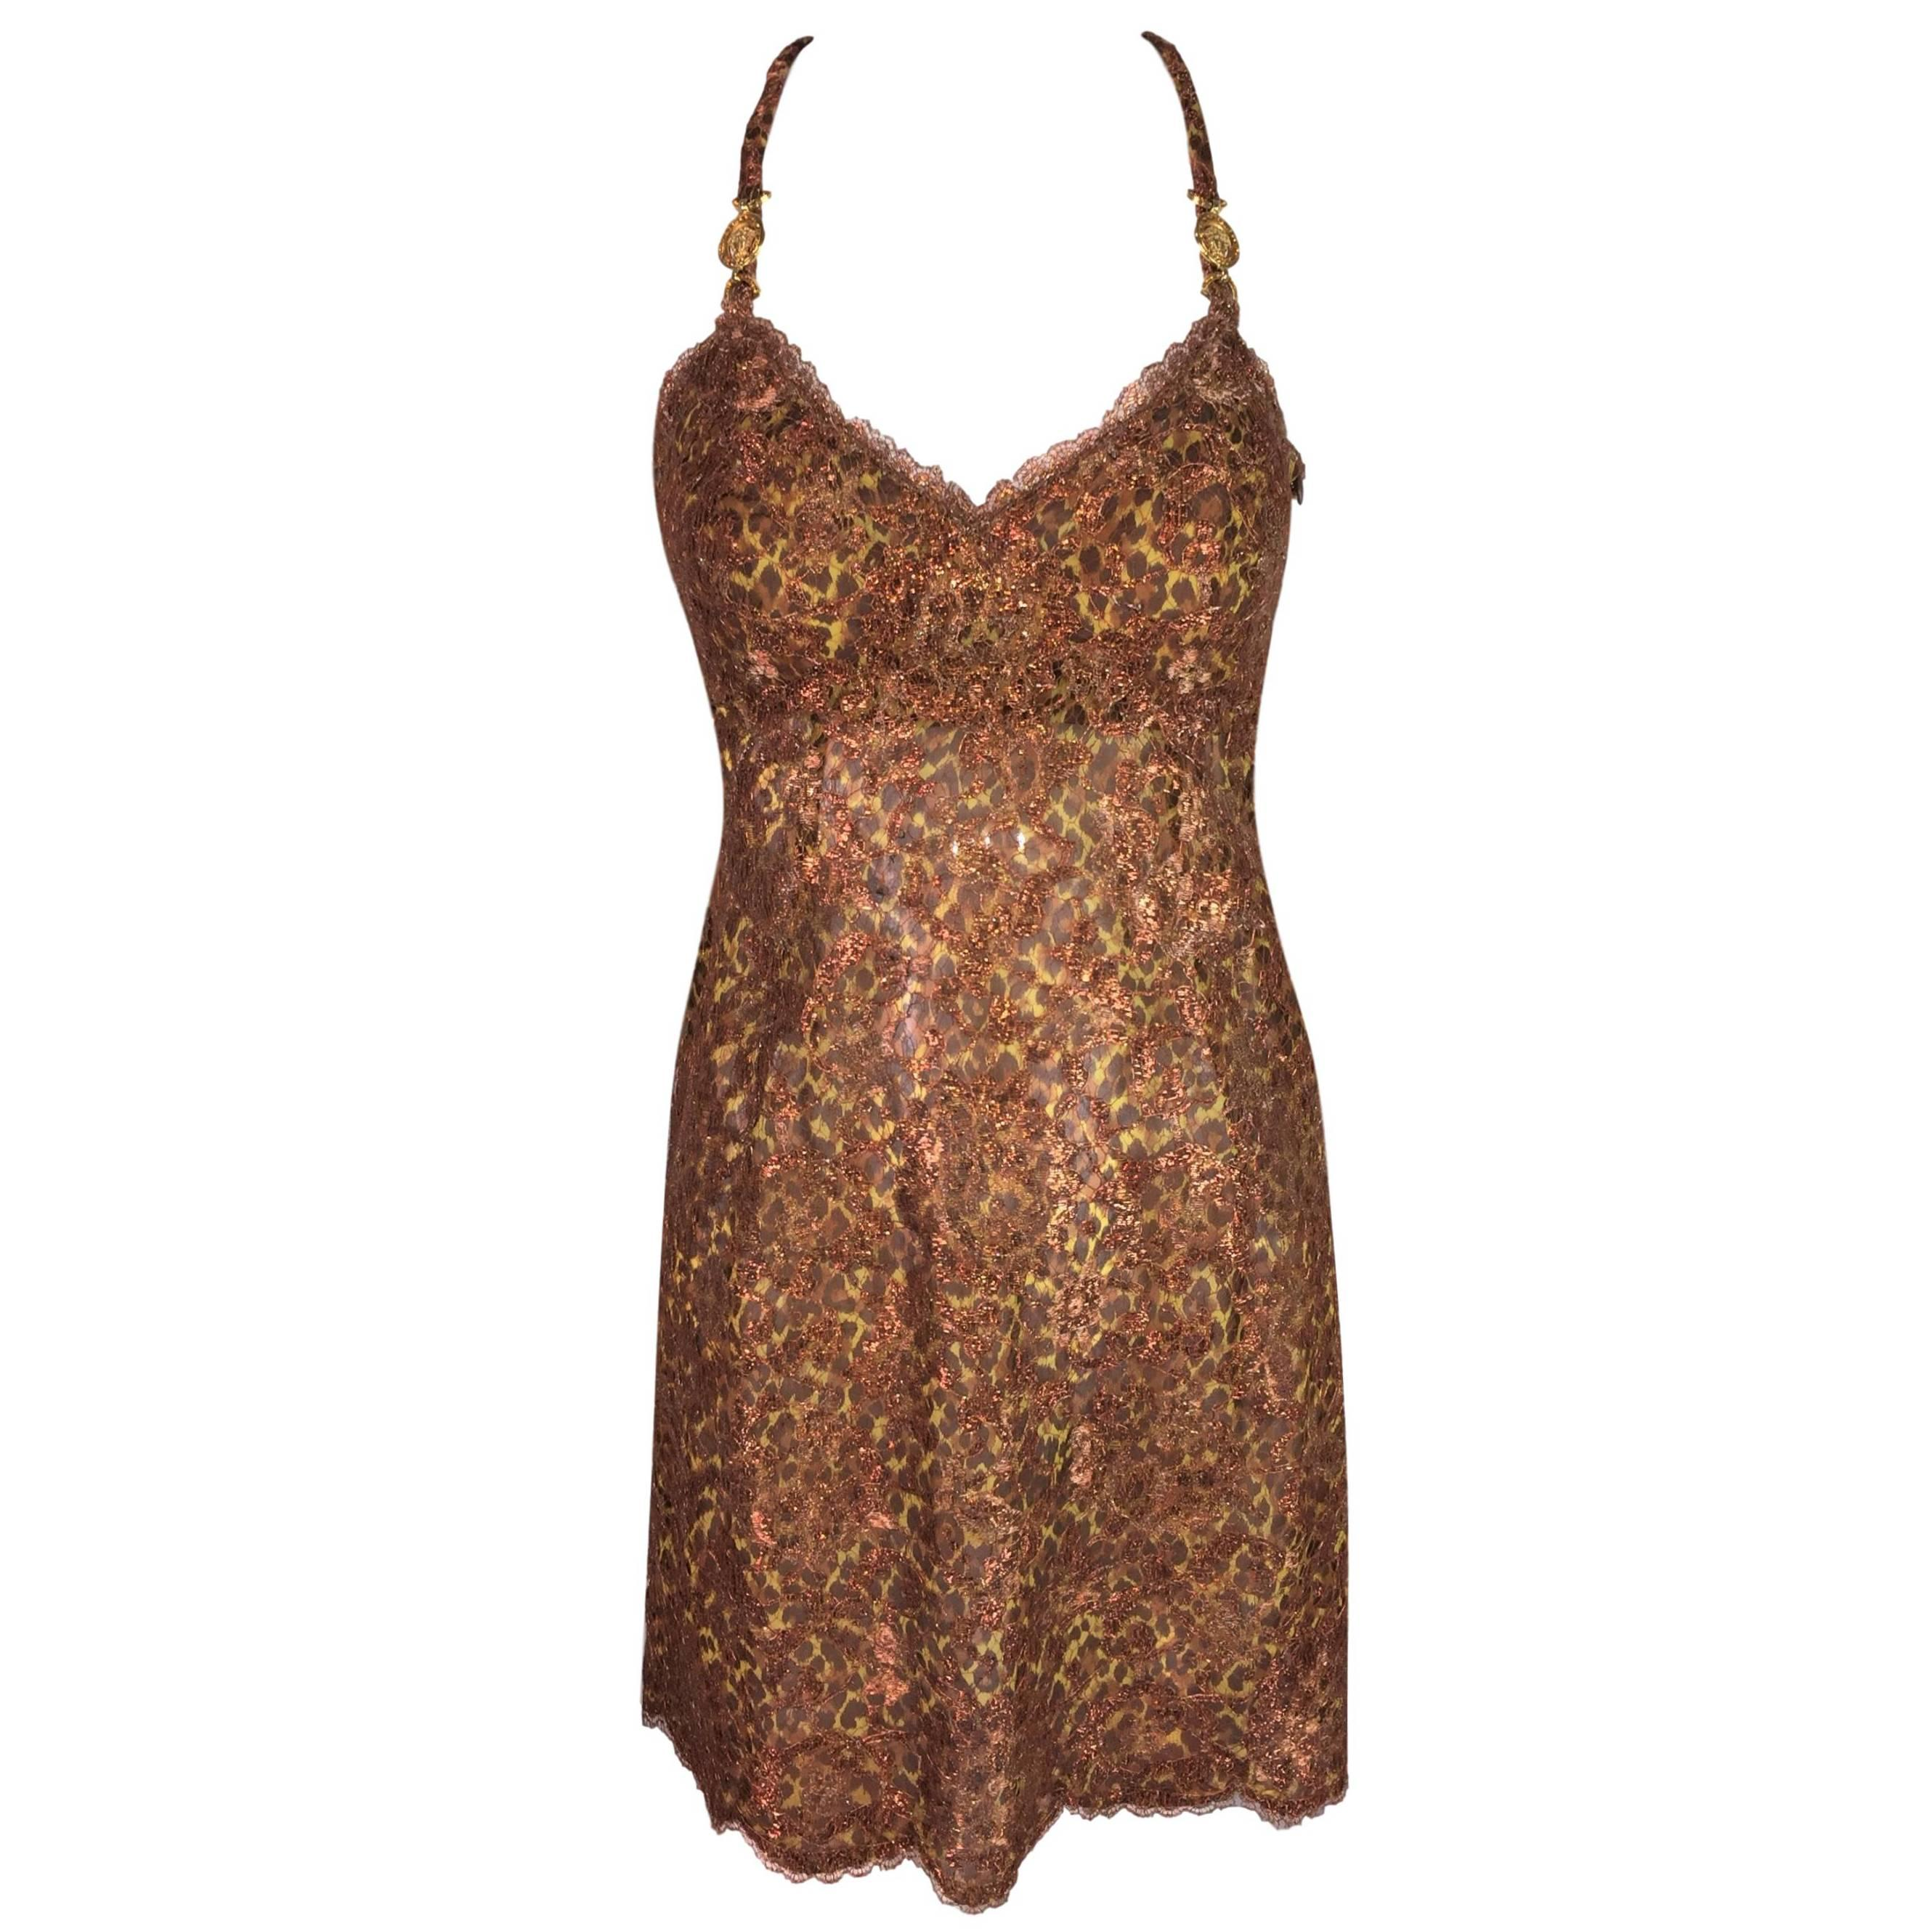 625bc6b76a73 90s Gianni Versace Leopard Print Bodycon Jersey Dress, Spring 1994 at  1stdibs